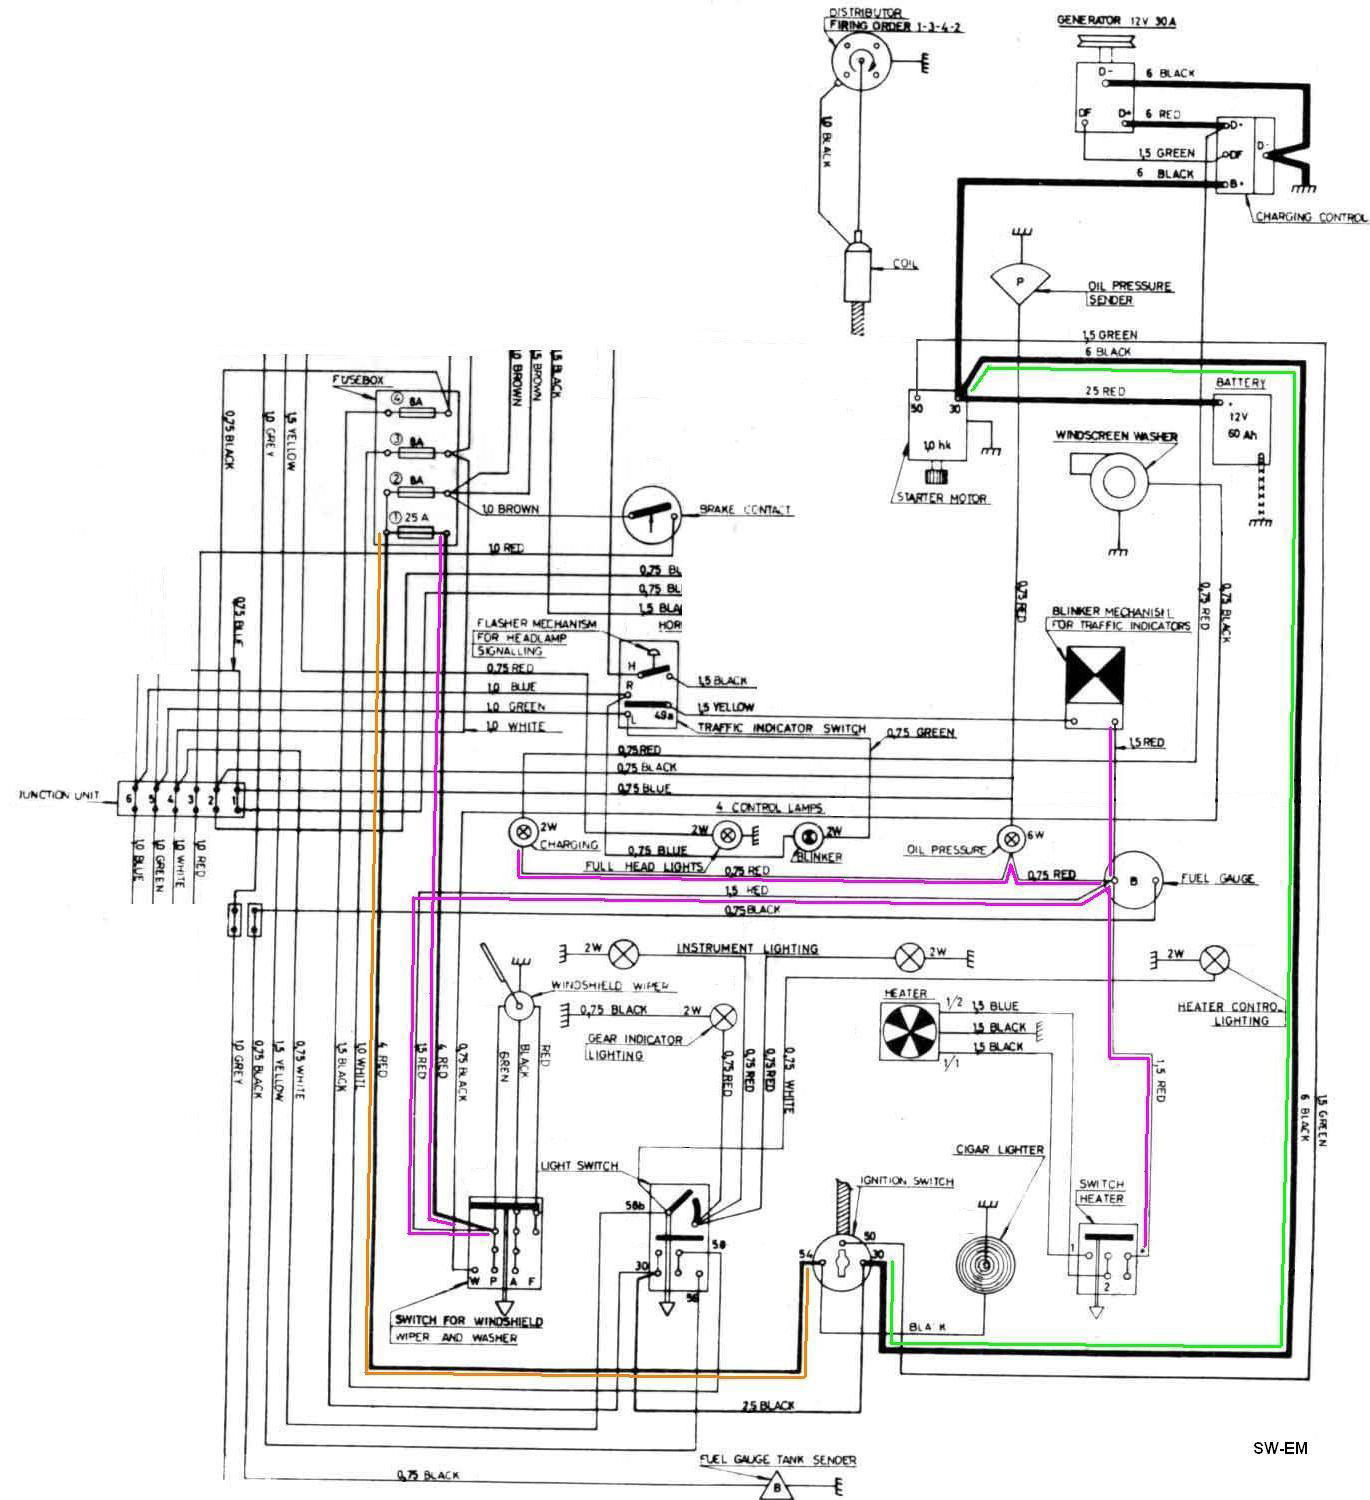 IGN SW wiring diag 122 markup 1800 ignition wiring swedish vs british design volvo penta industrial engine wiring diagram at mr168.co